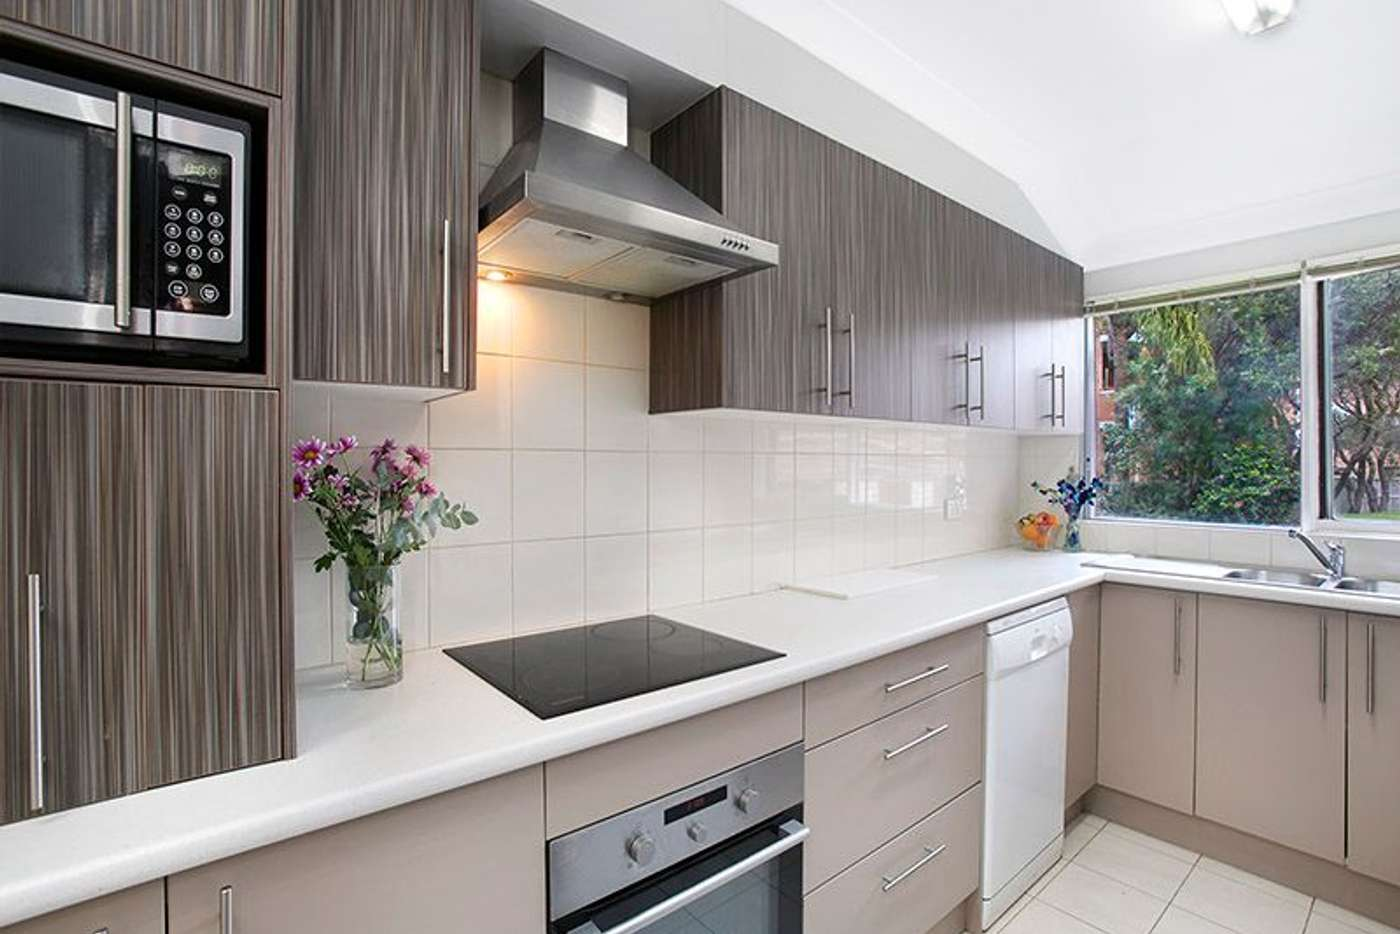 Main view of Homely apartment listing, 16/55-61 President Avenue, Caringbah NSW 2229